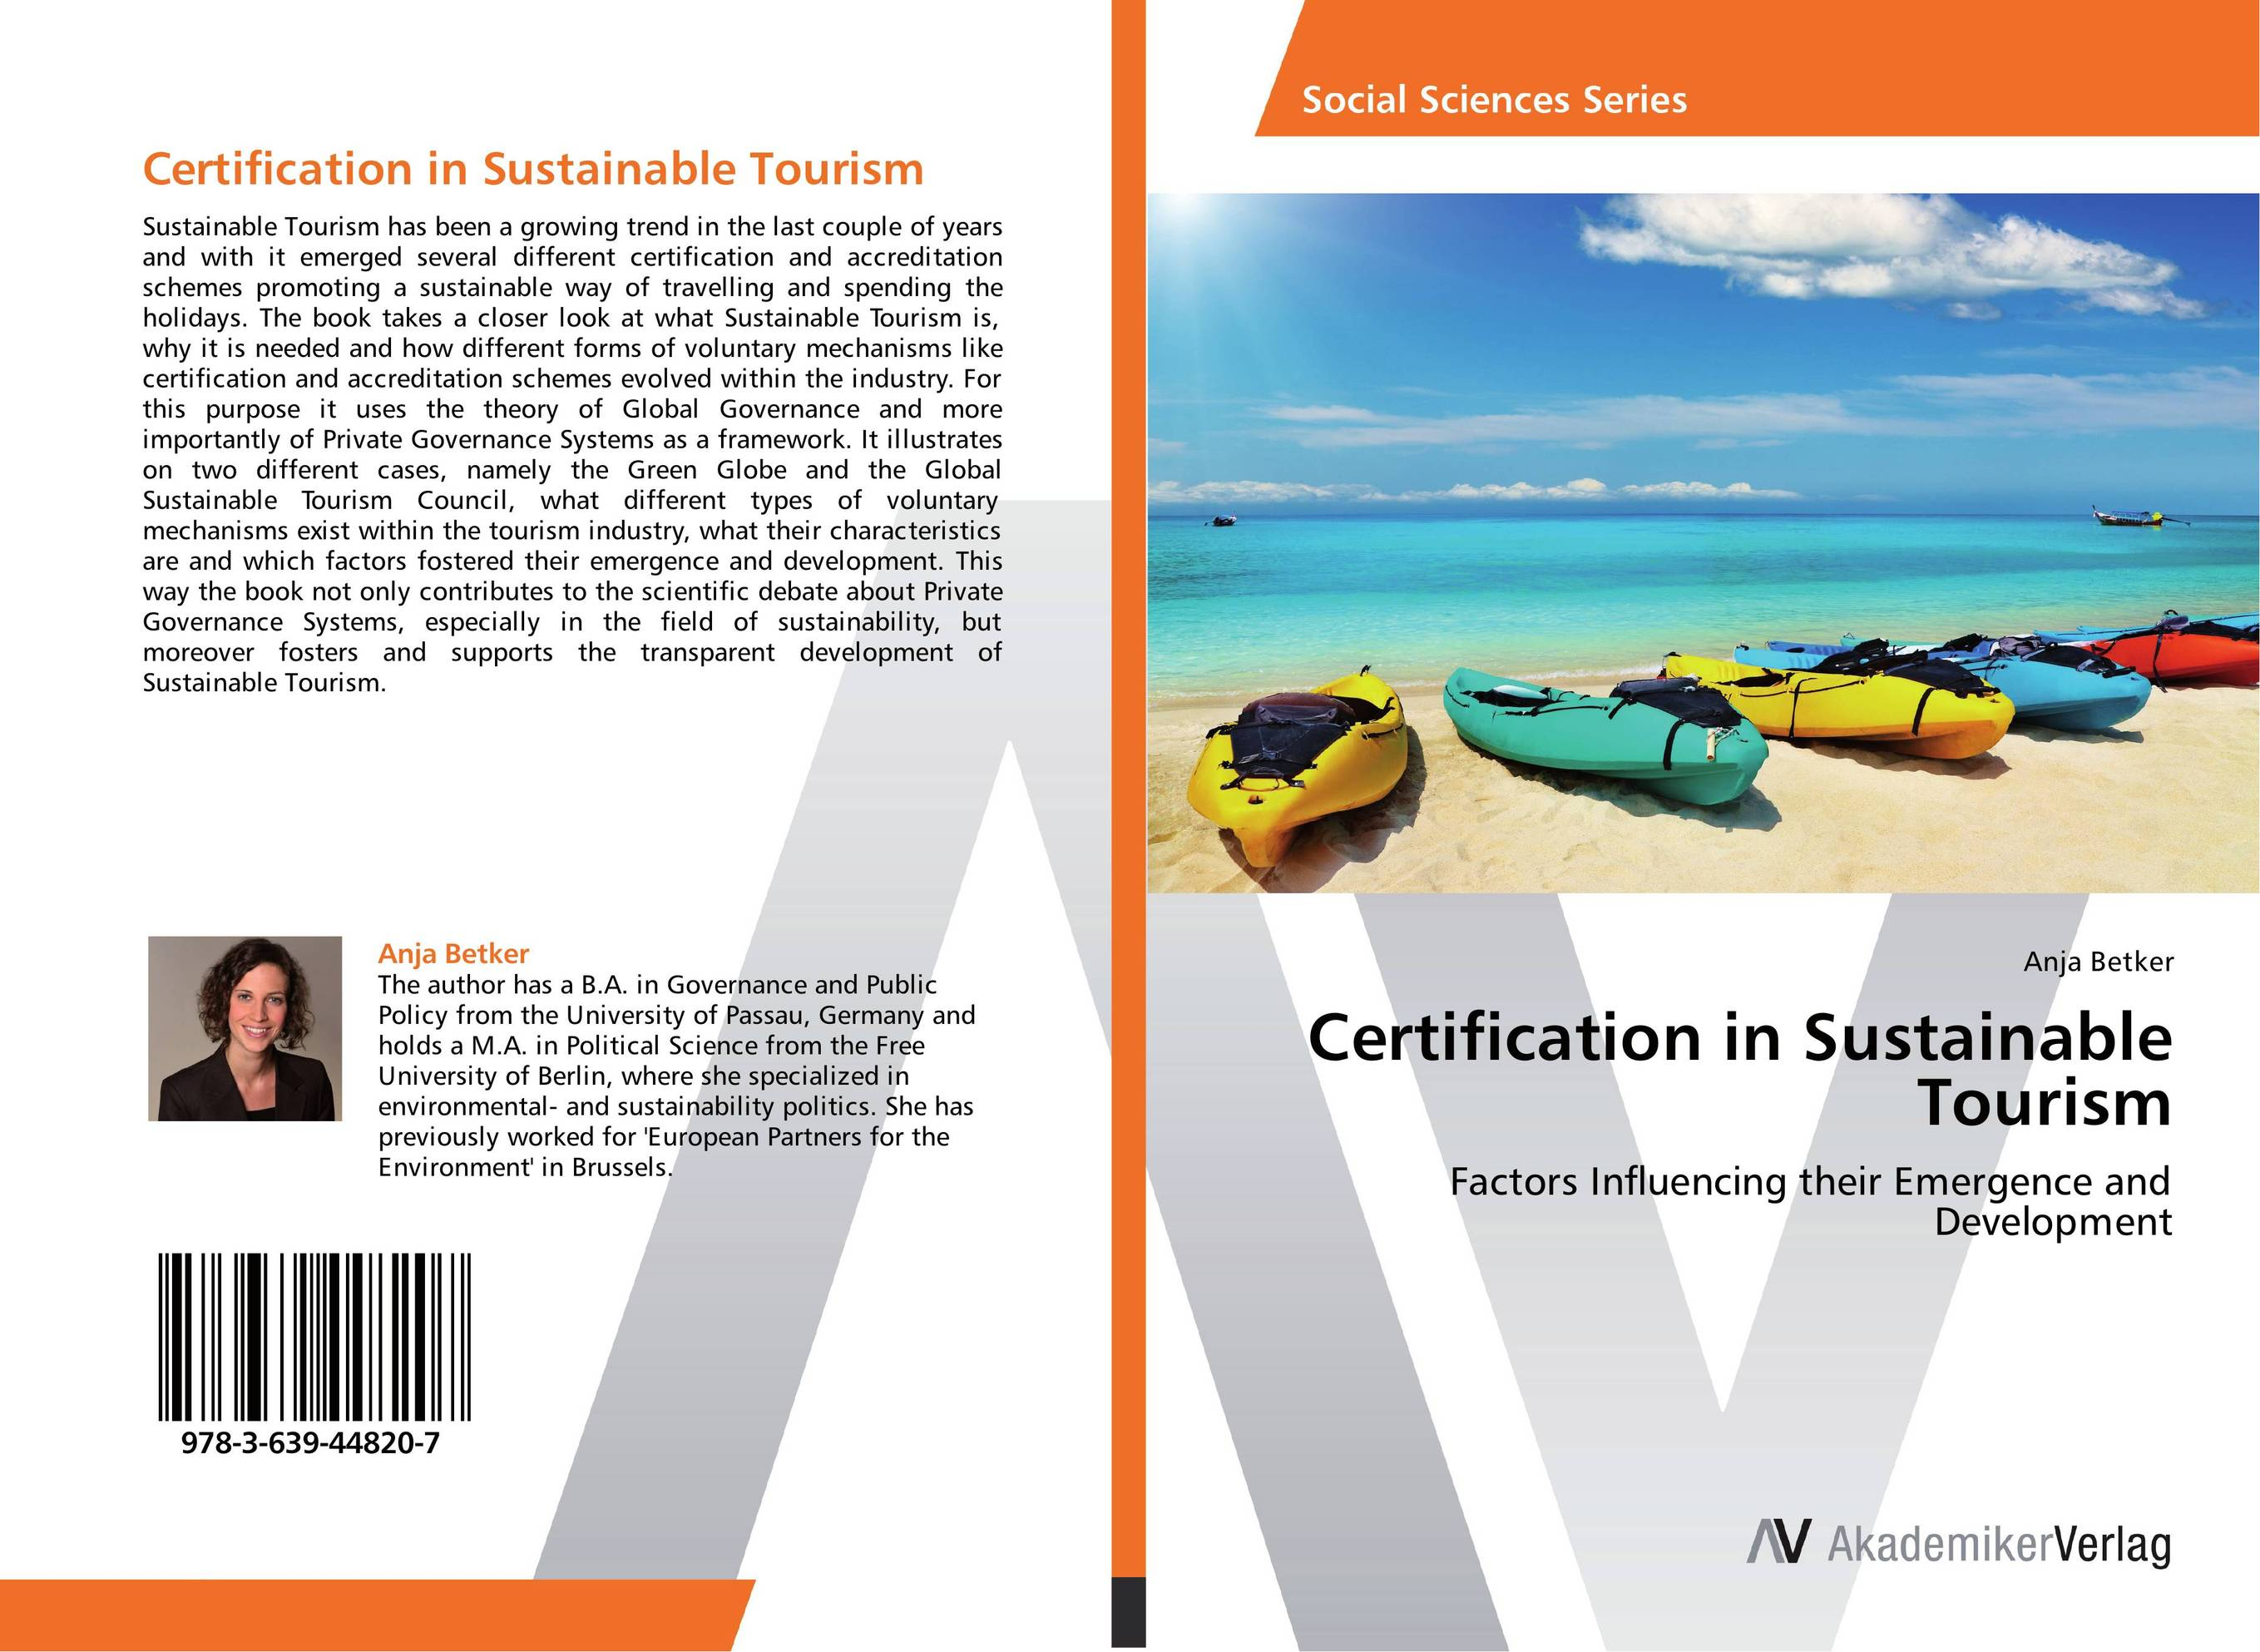 Certification in Sustainable Tourism